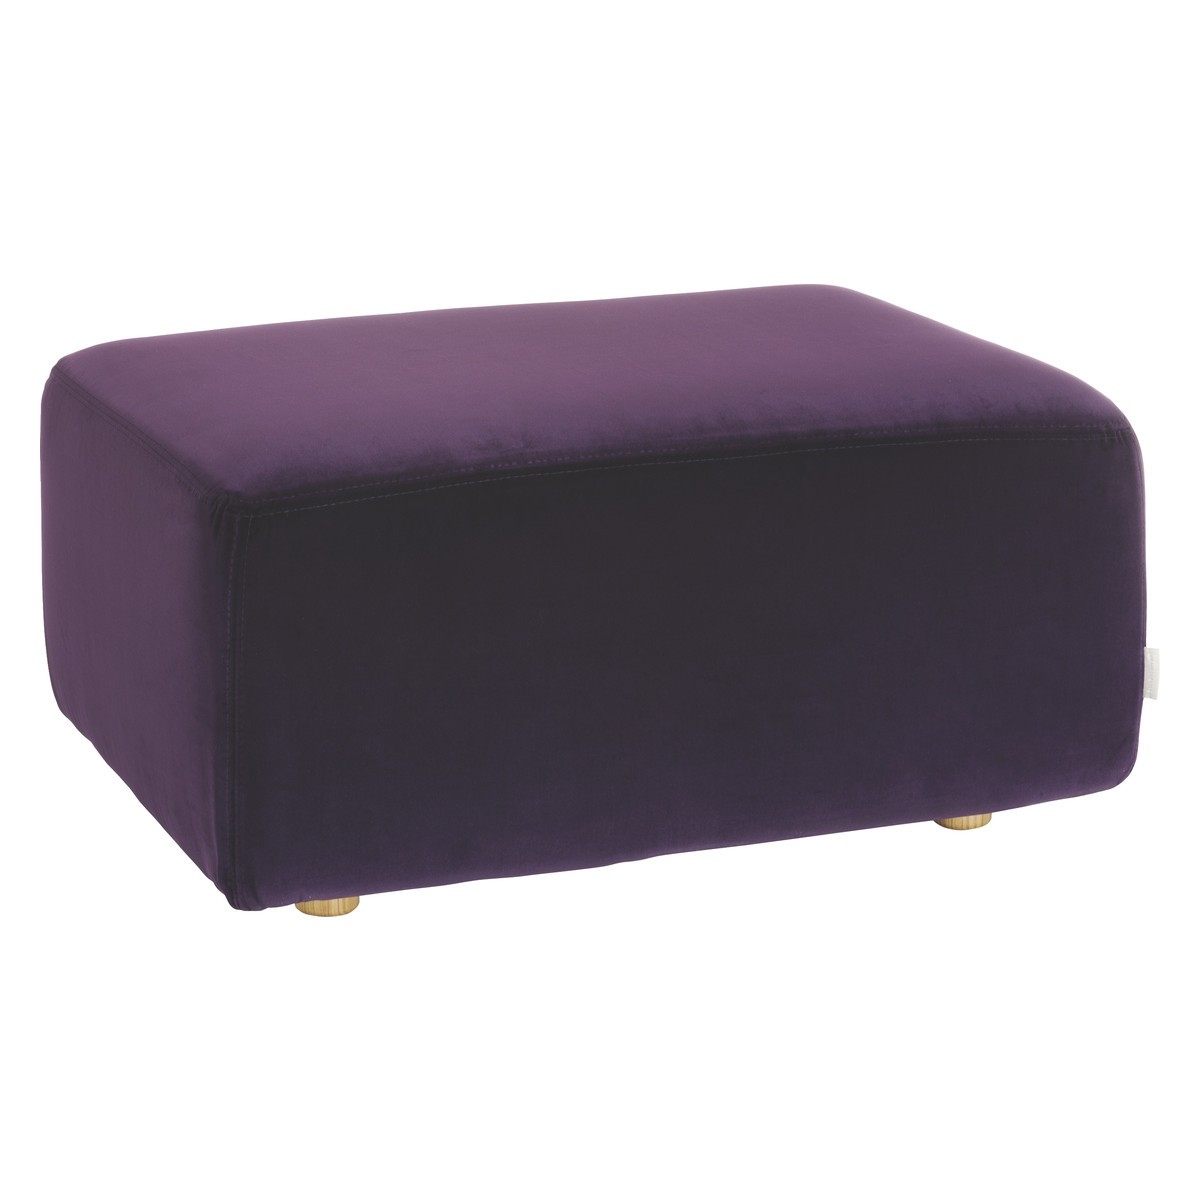 Louis Purple Velvet Footstool Buy Now At Habitat Uk Within Velvet Footstool (Image 12 of 15)